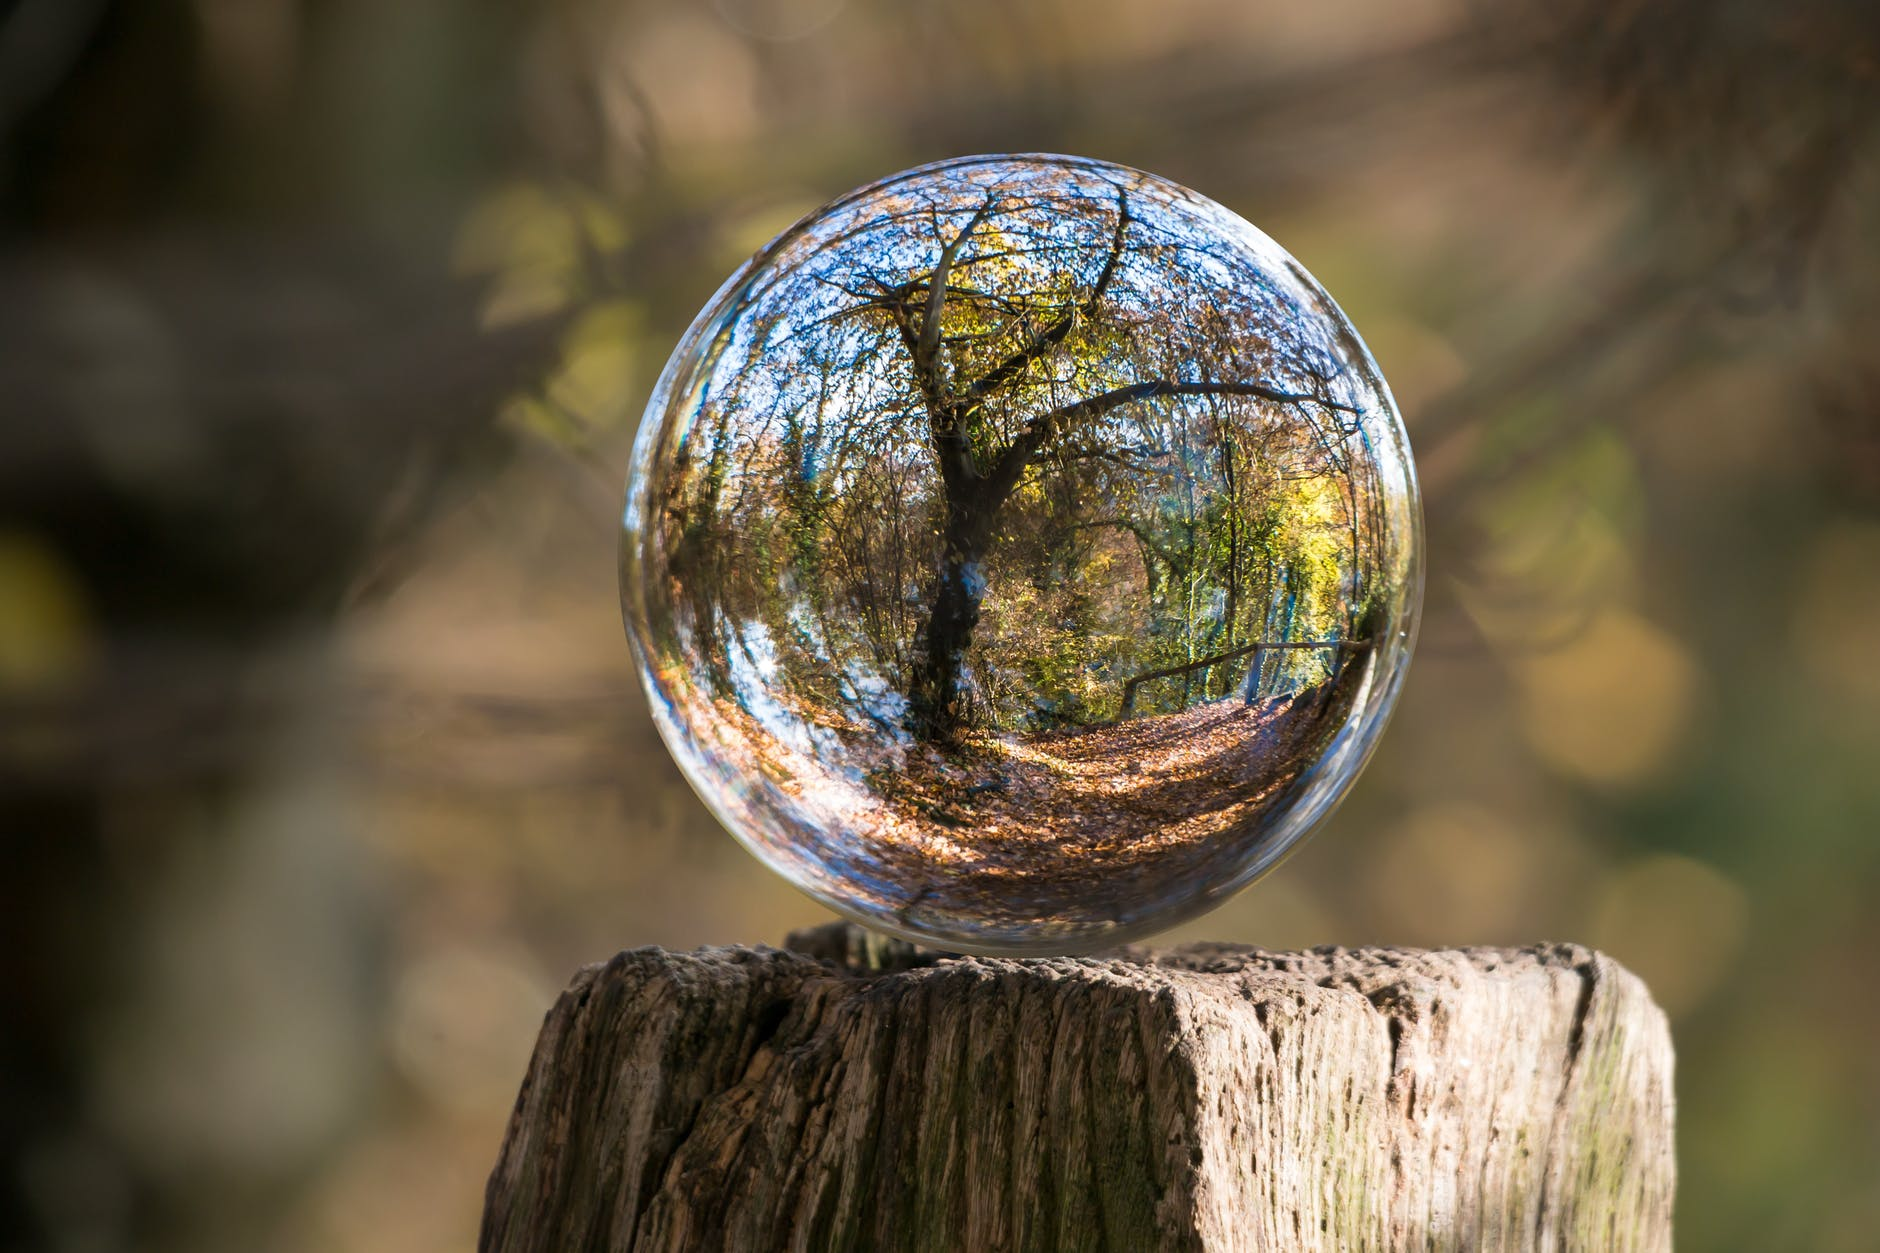 The reflection of a tree in a glass sphere